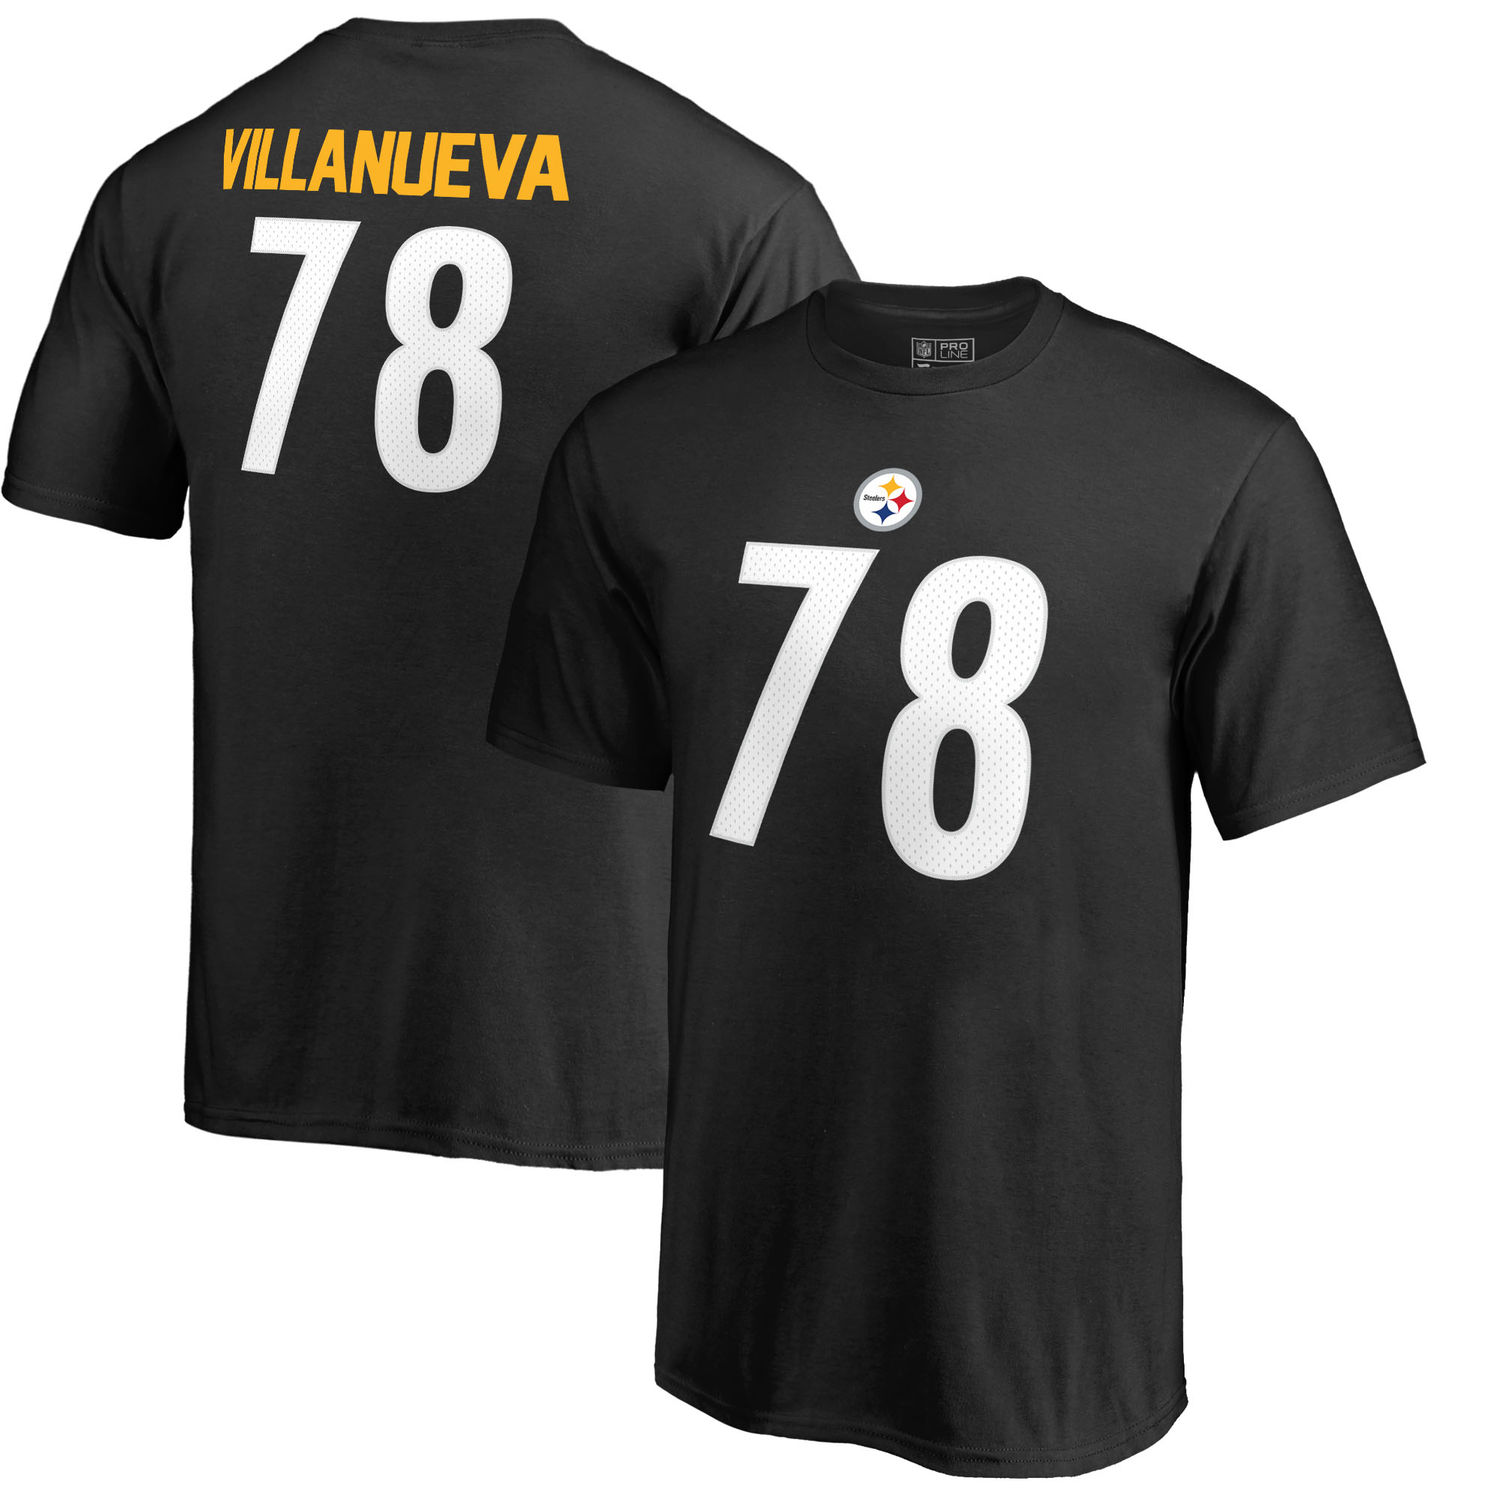 Youth Pittsburgh Steelers 78 Alejandro Villanueva NFL Pro Line by Fanatics Branded Black Authentic Stack Name Number T Shirt